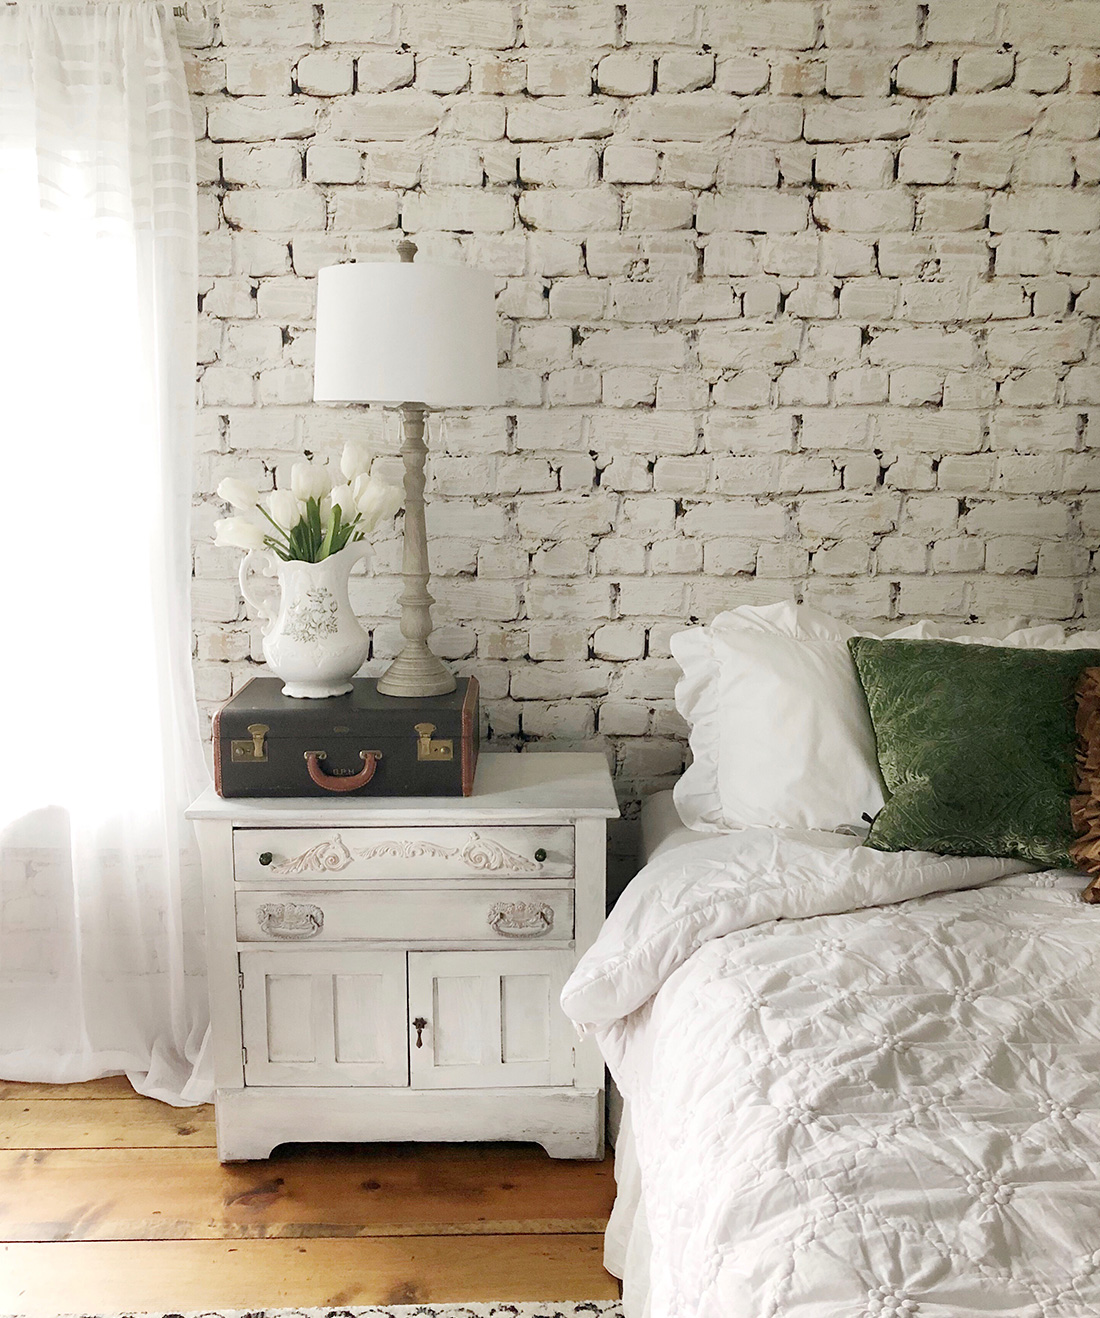 Whitewash Bricks Wallpaper White Rustic Brick Wallpaper Milton King